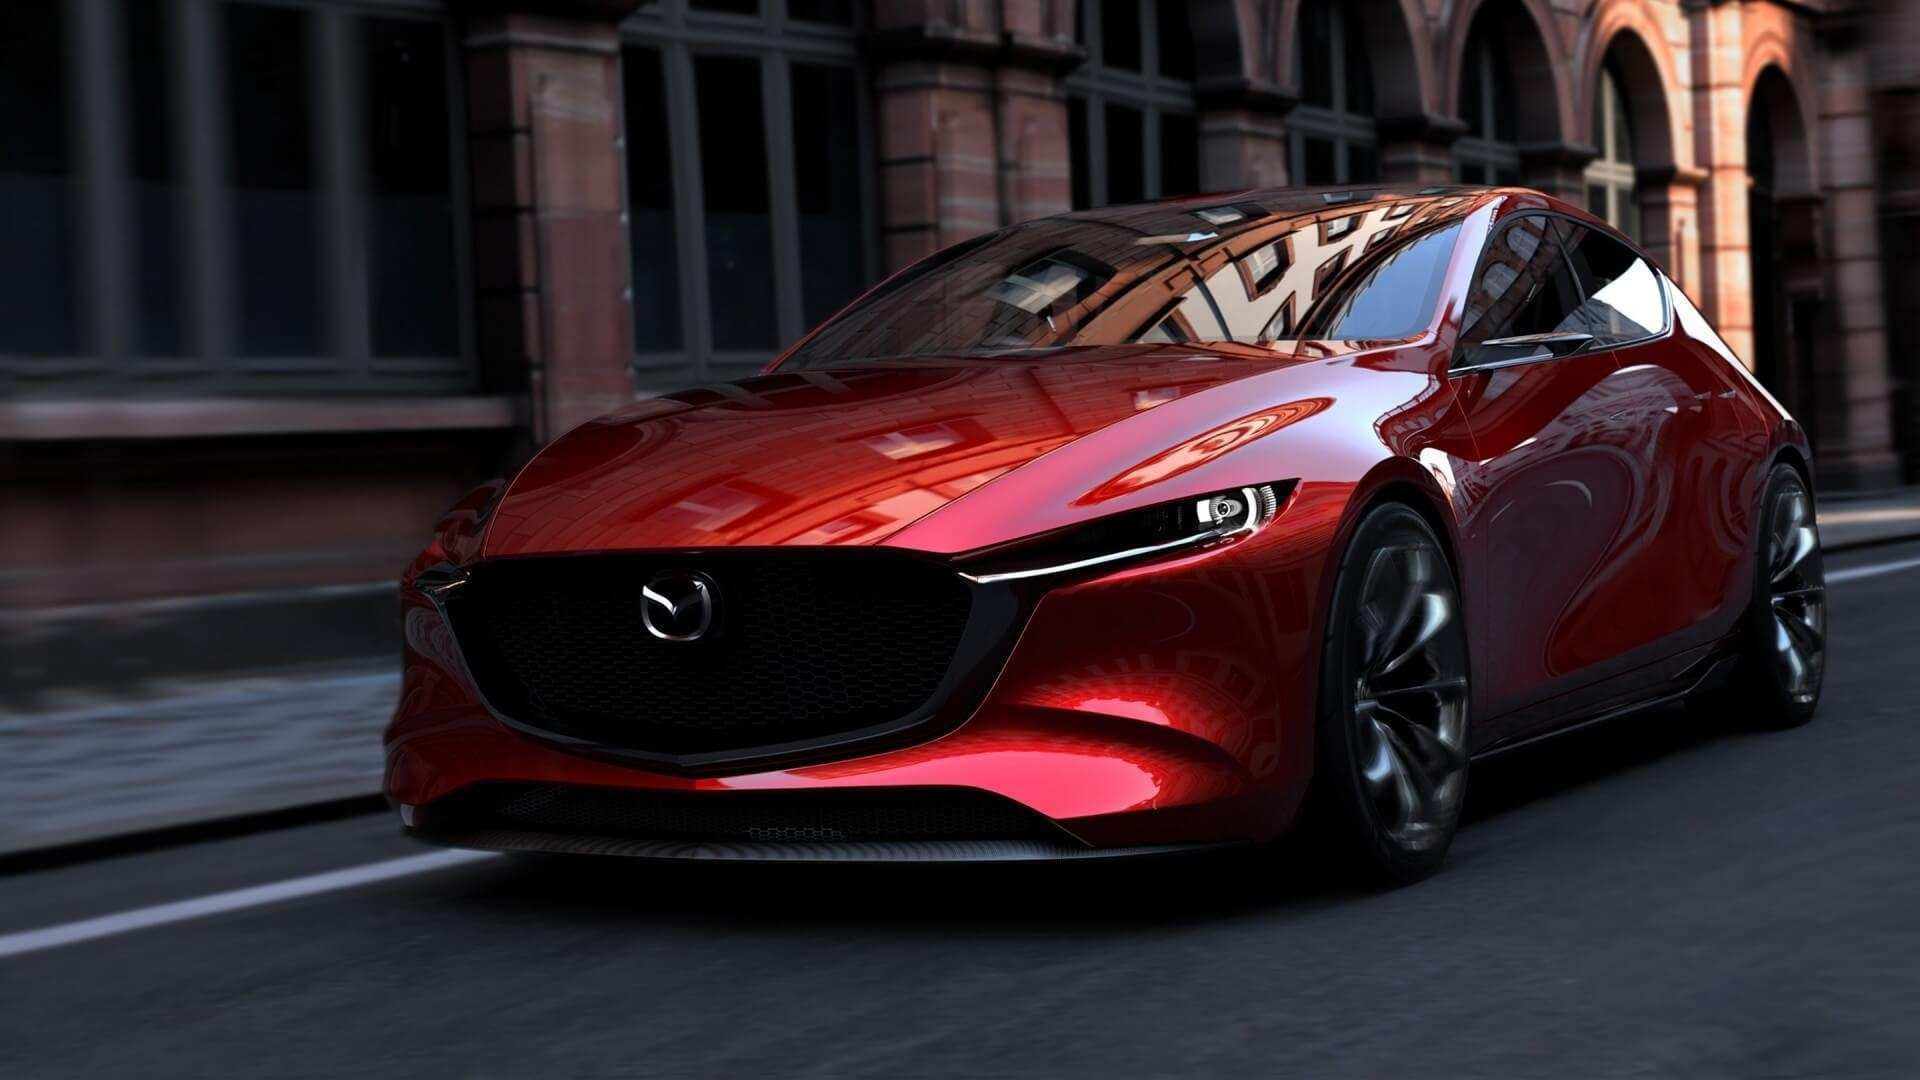 73 Gallery of 2020 Mazda MX 5 Miata Research New by 2020 Mazda MX 5 Miata